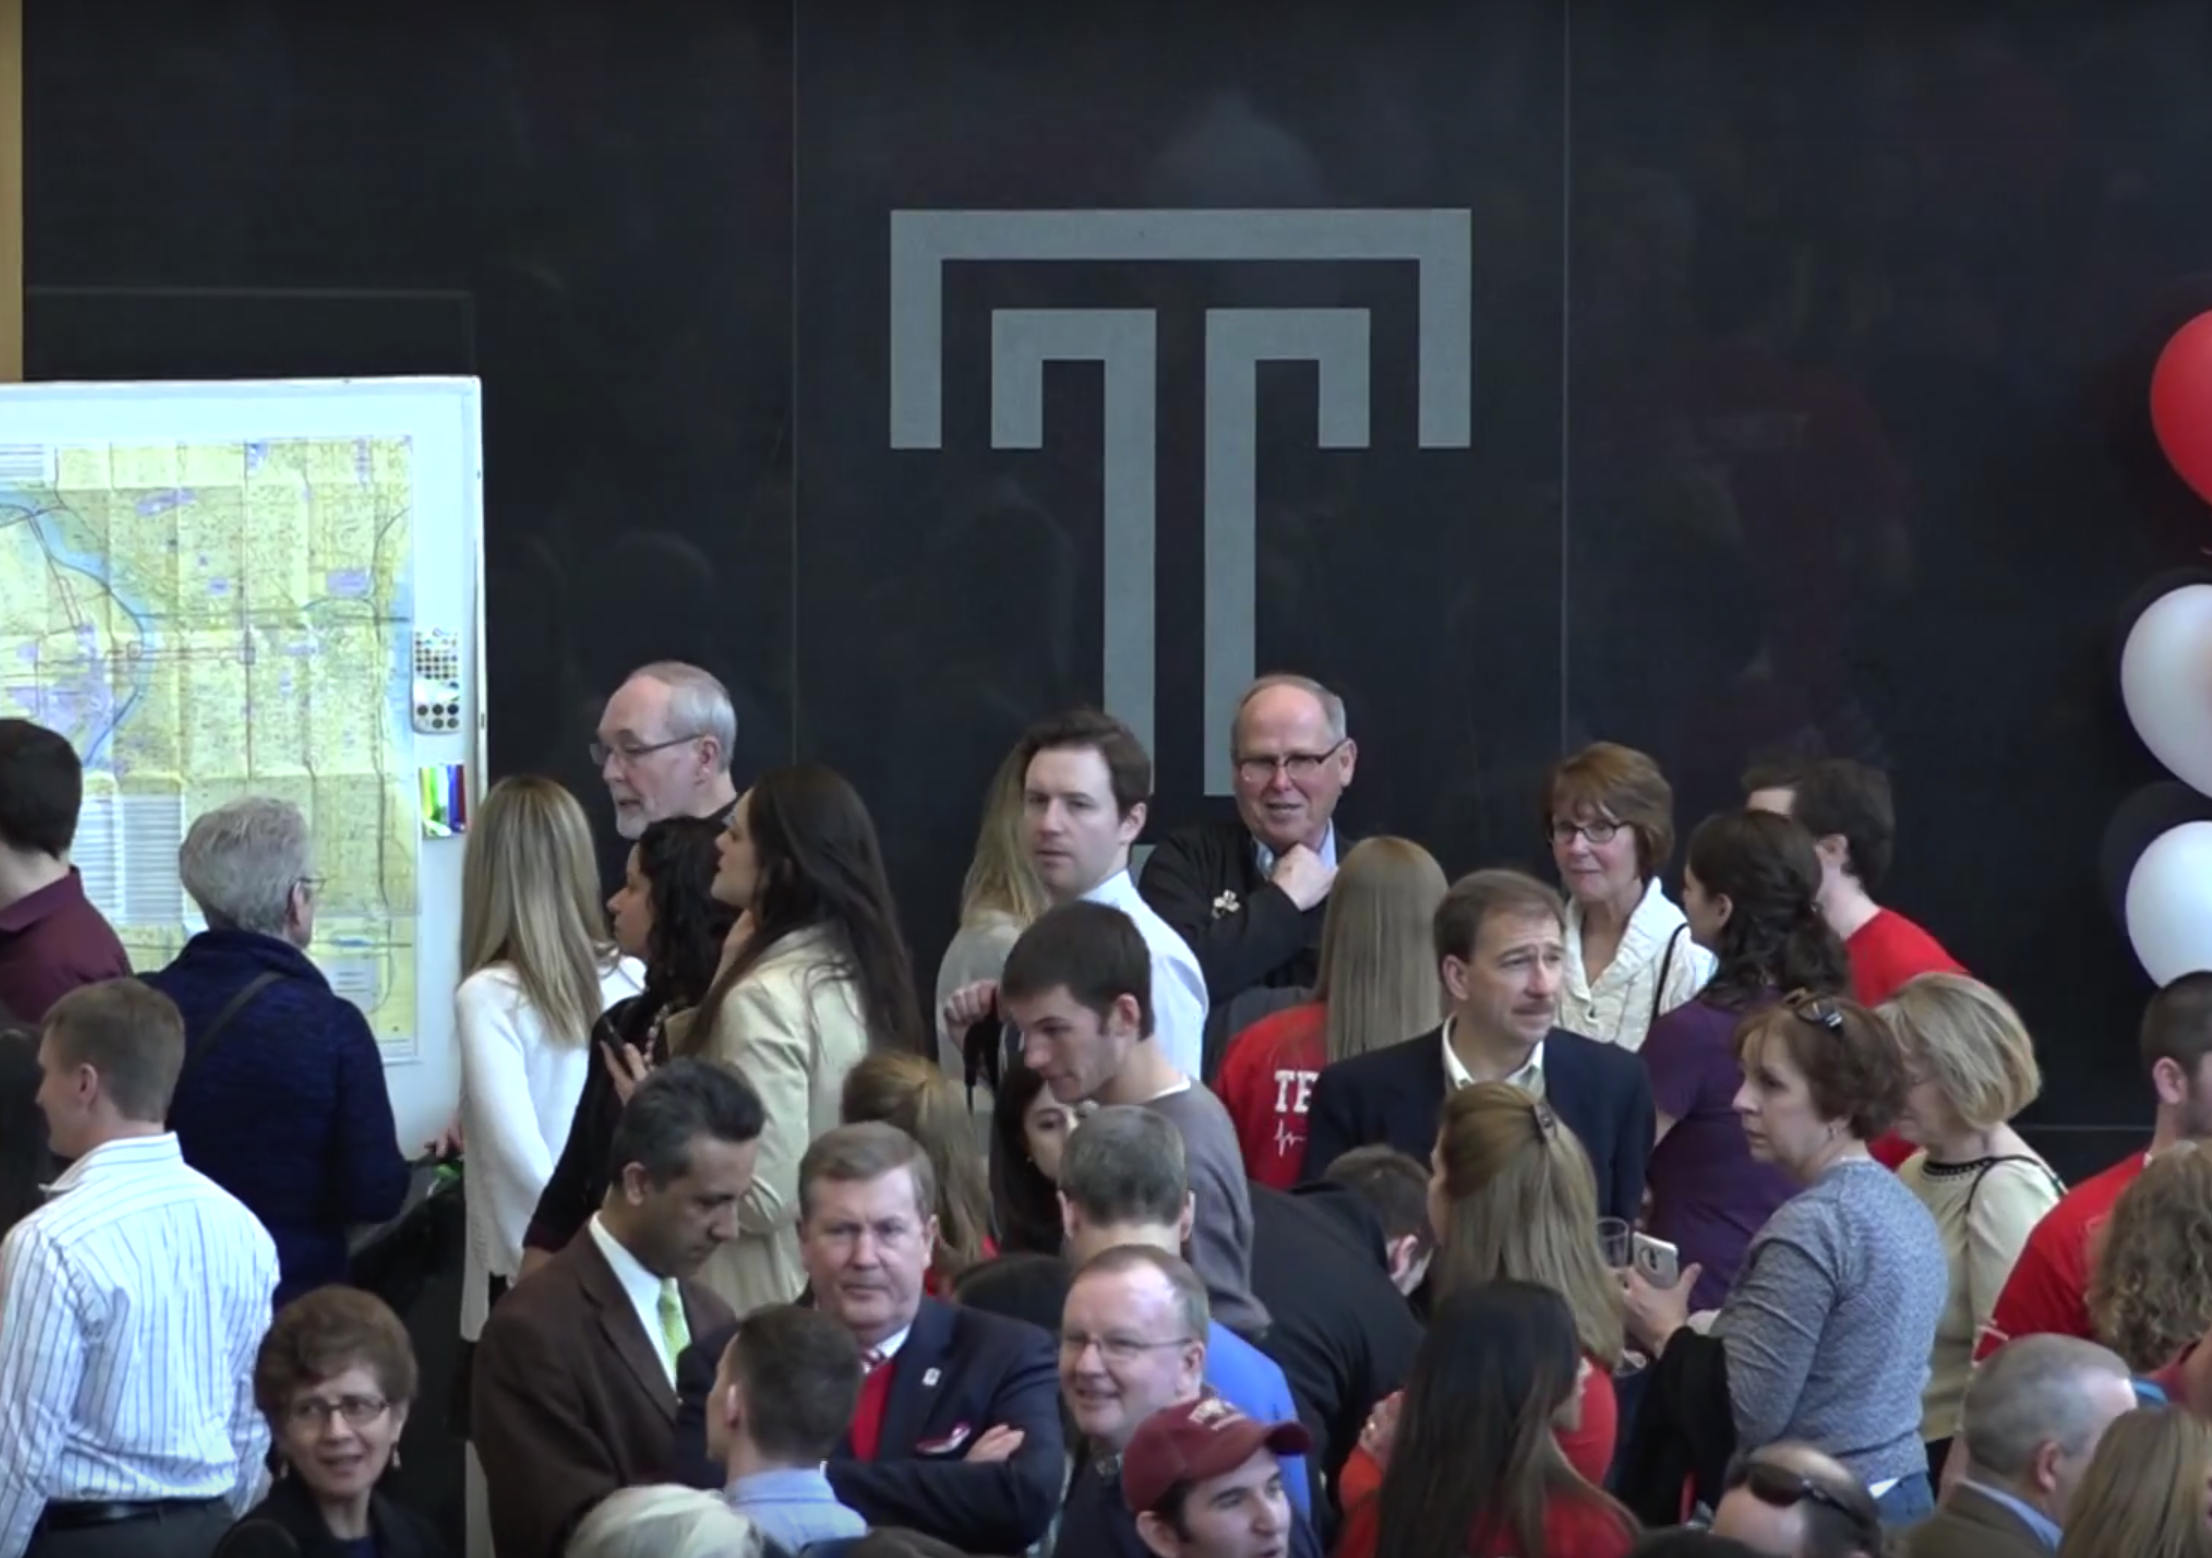 Pre-Med Students go through match day to find out what medical school they were accepted into.